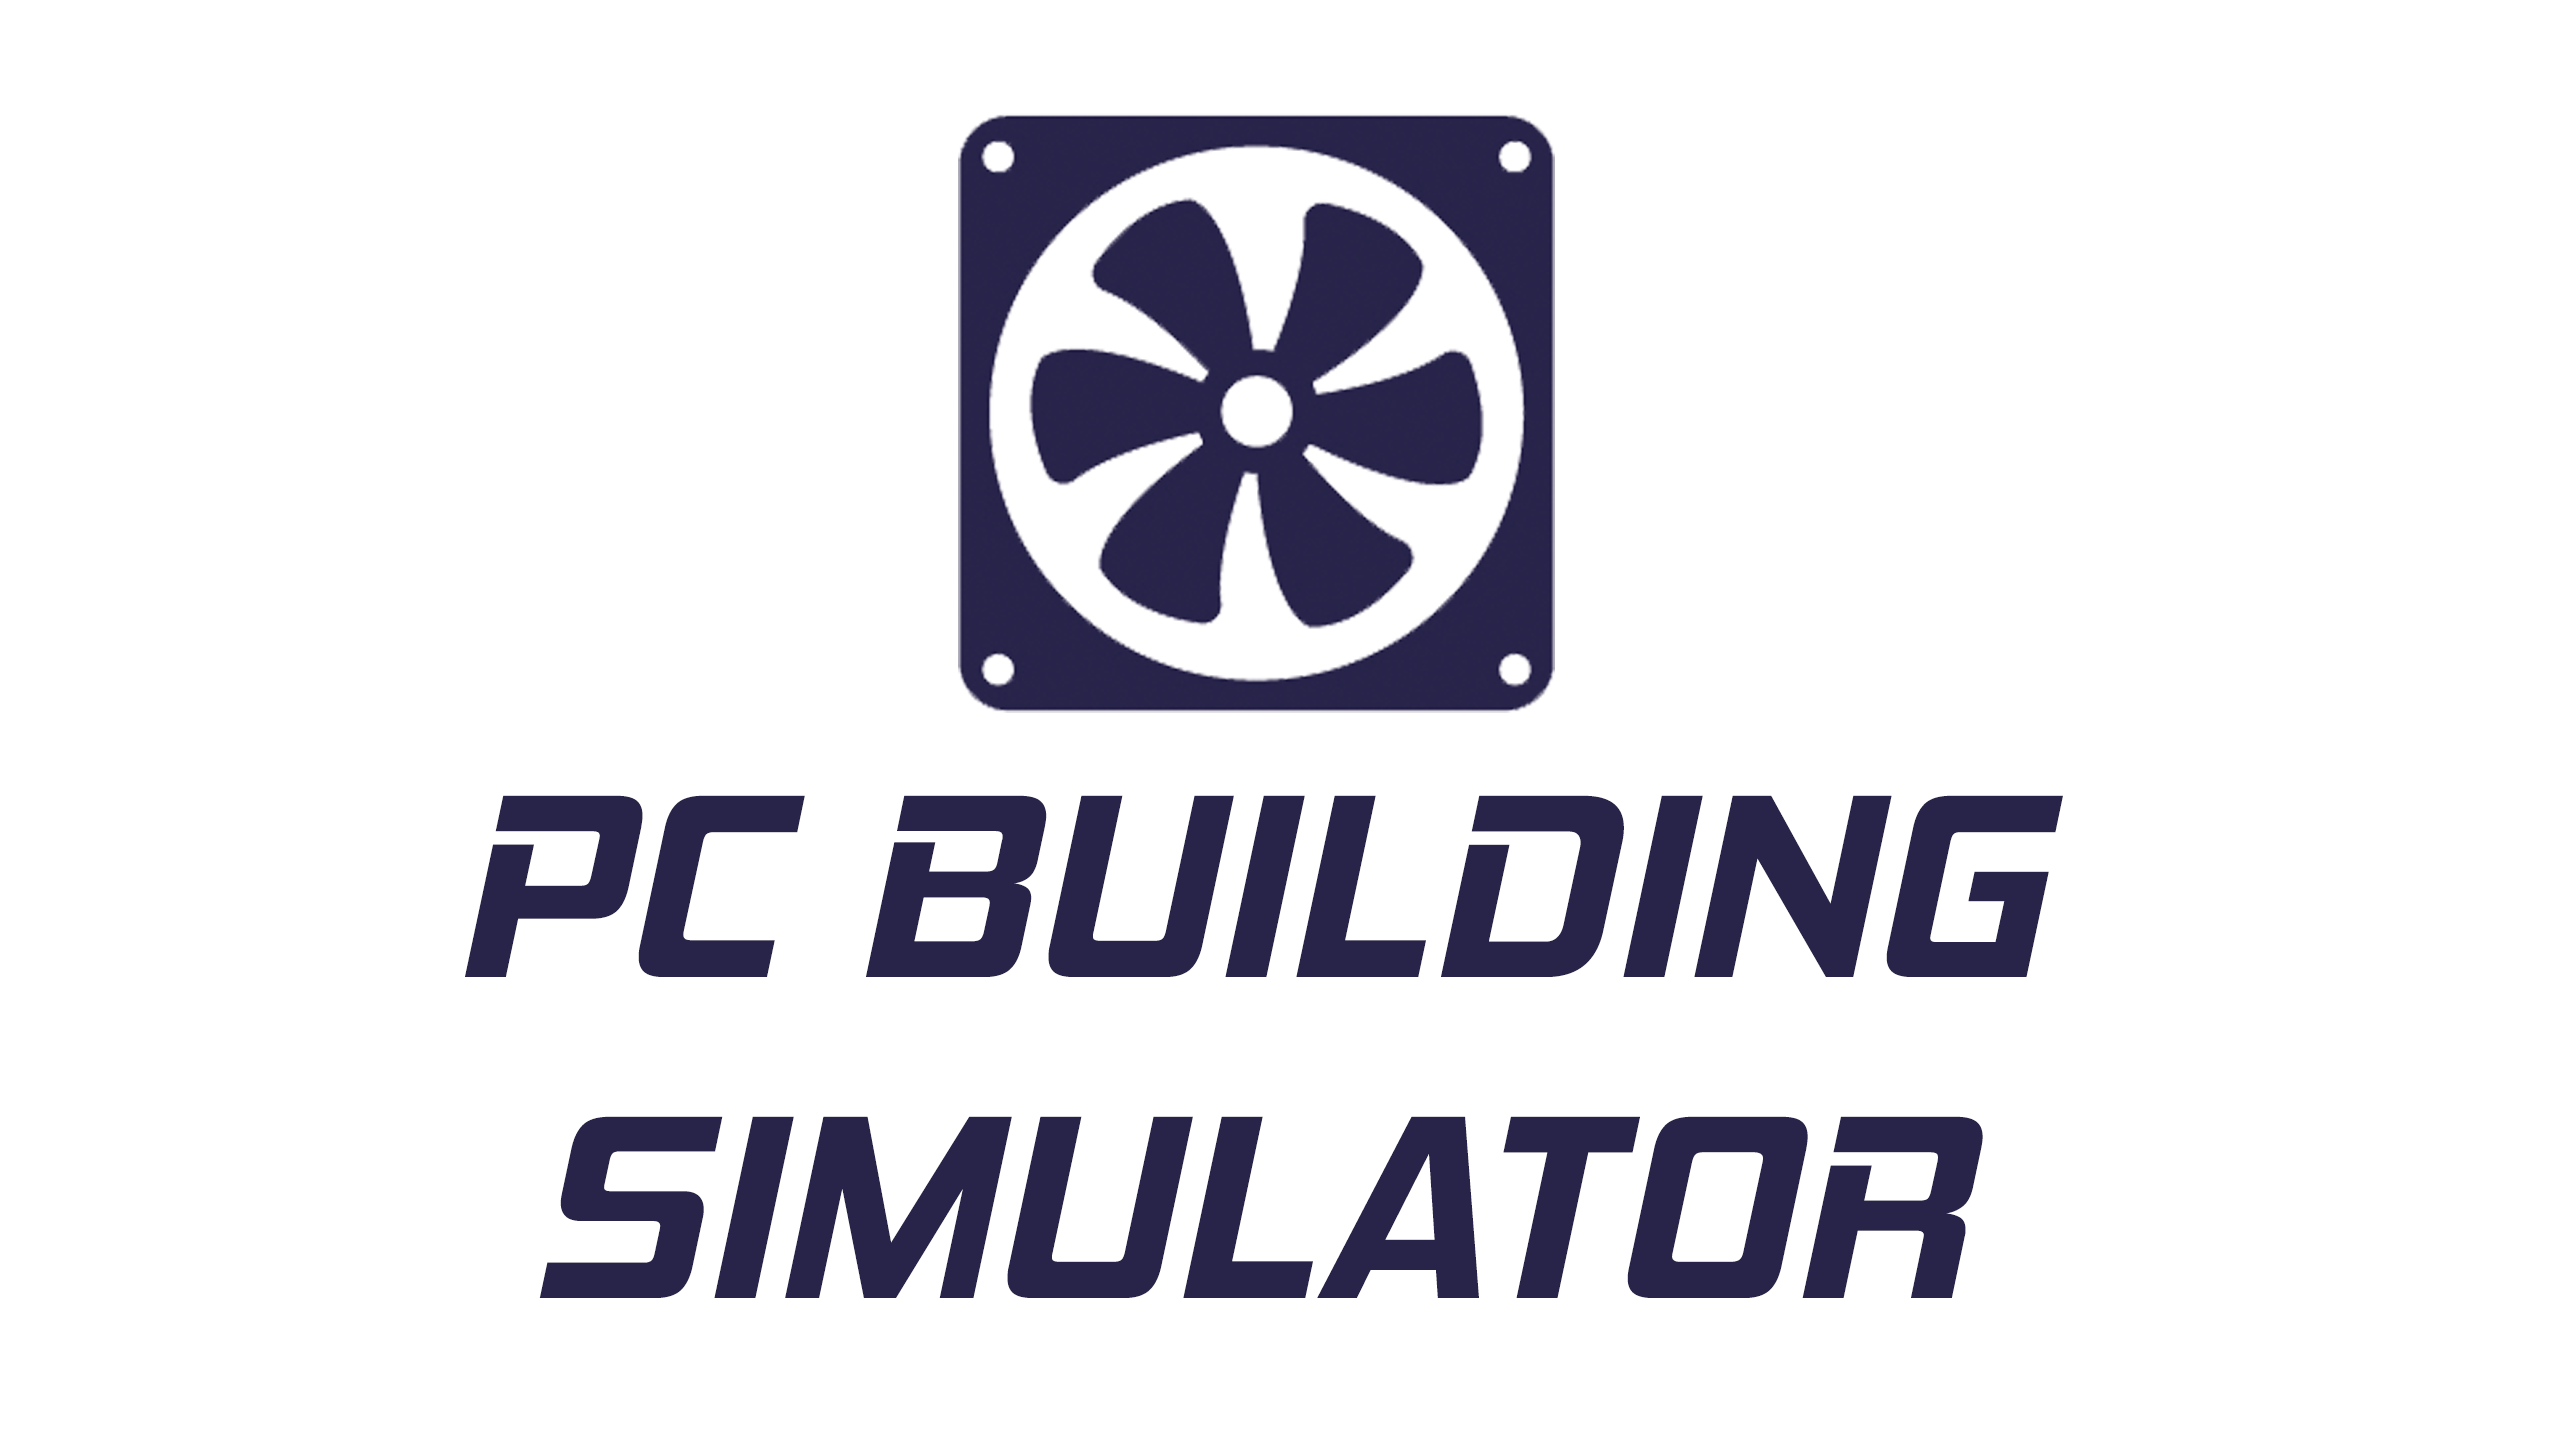 Pc Building Simulator Is An Actual Game About Building Gaming Pcs Gamer News Gaming Pcs New Games For Ps4